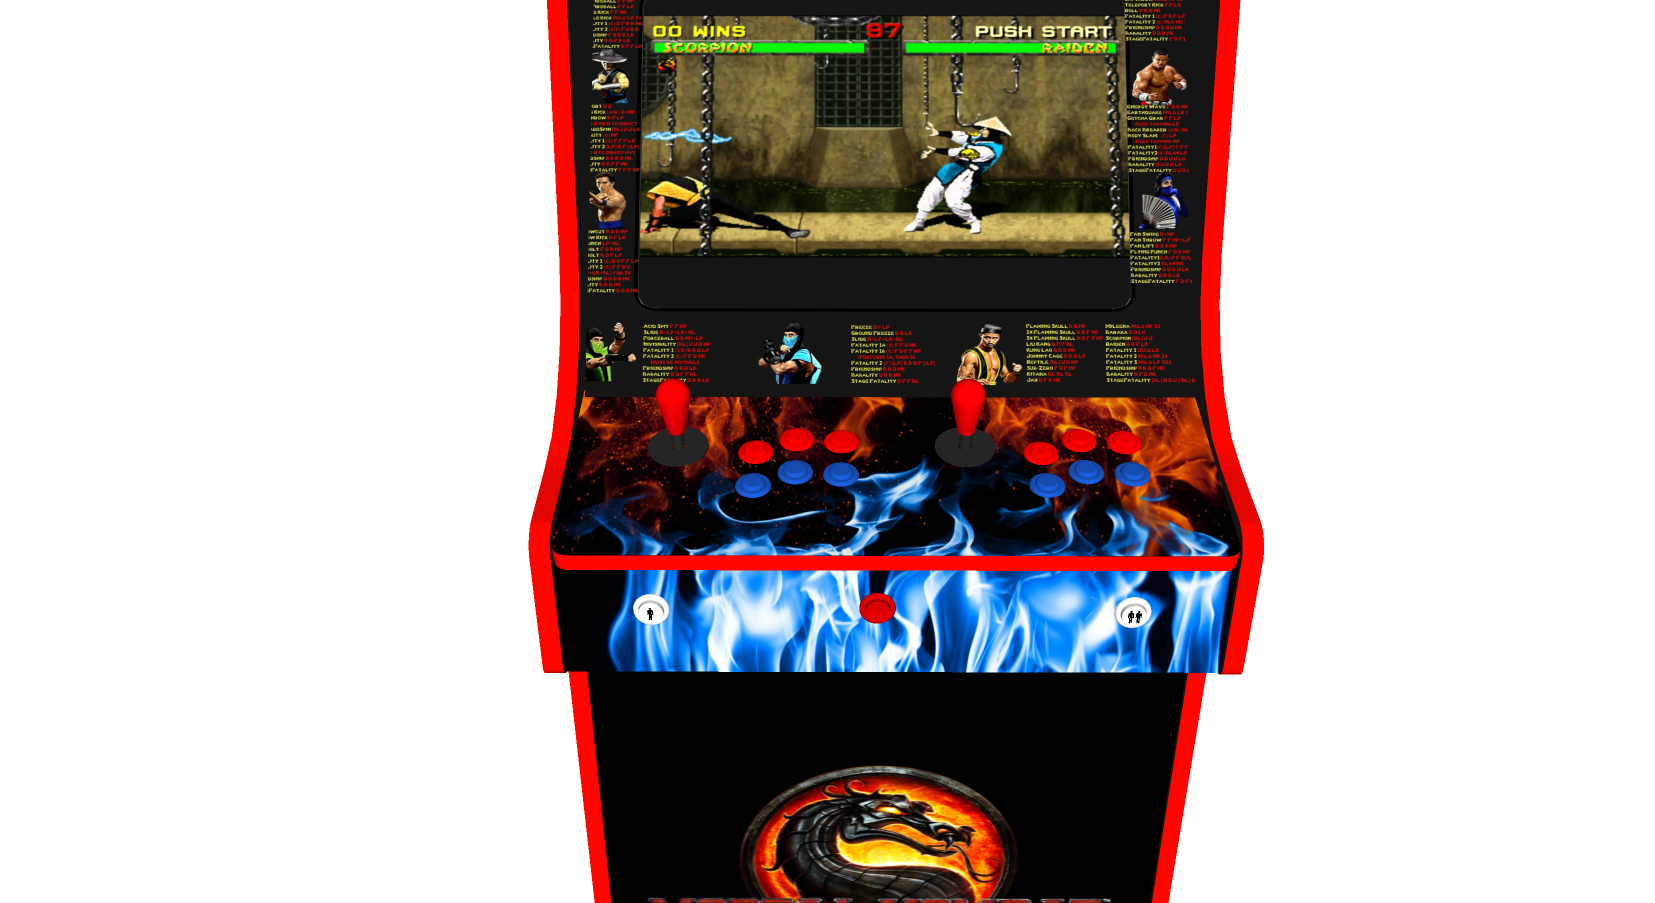 Classic Upright Arcade Machine - Mortal Kombat theme - Buttons v3.1